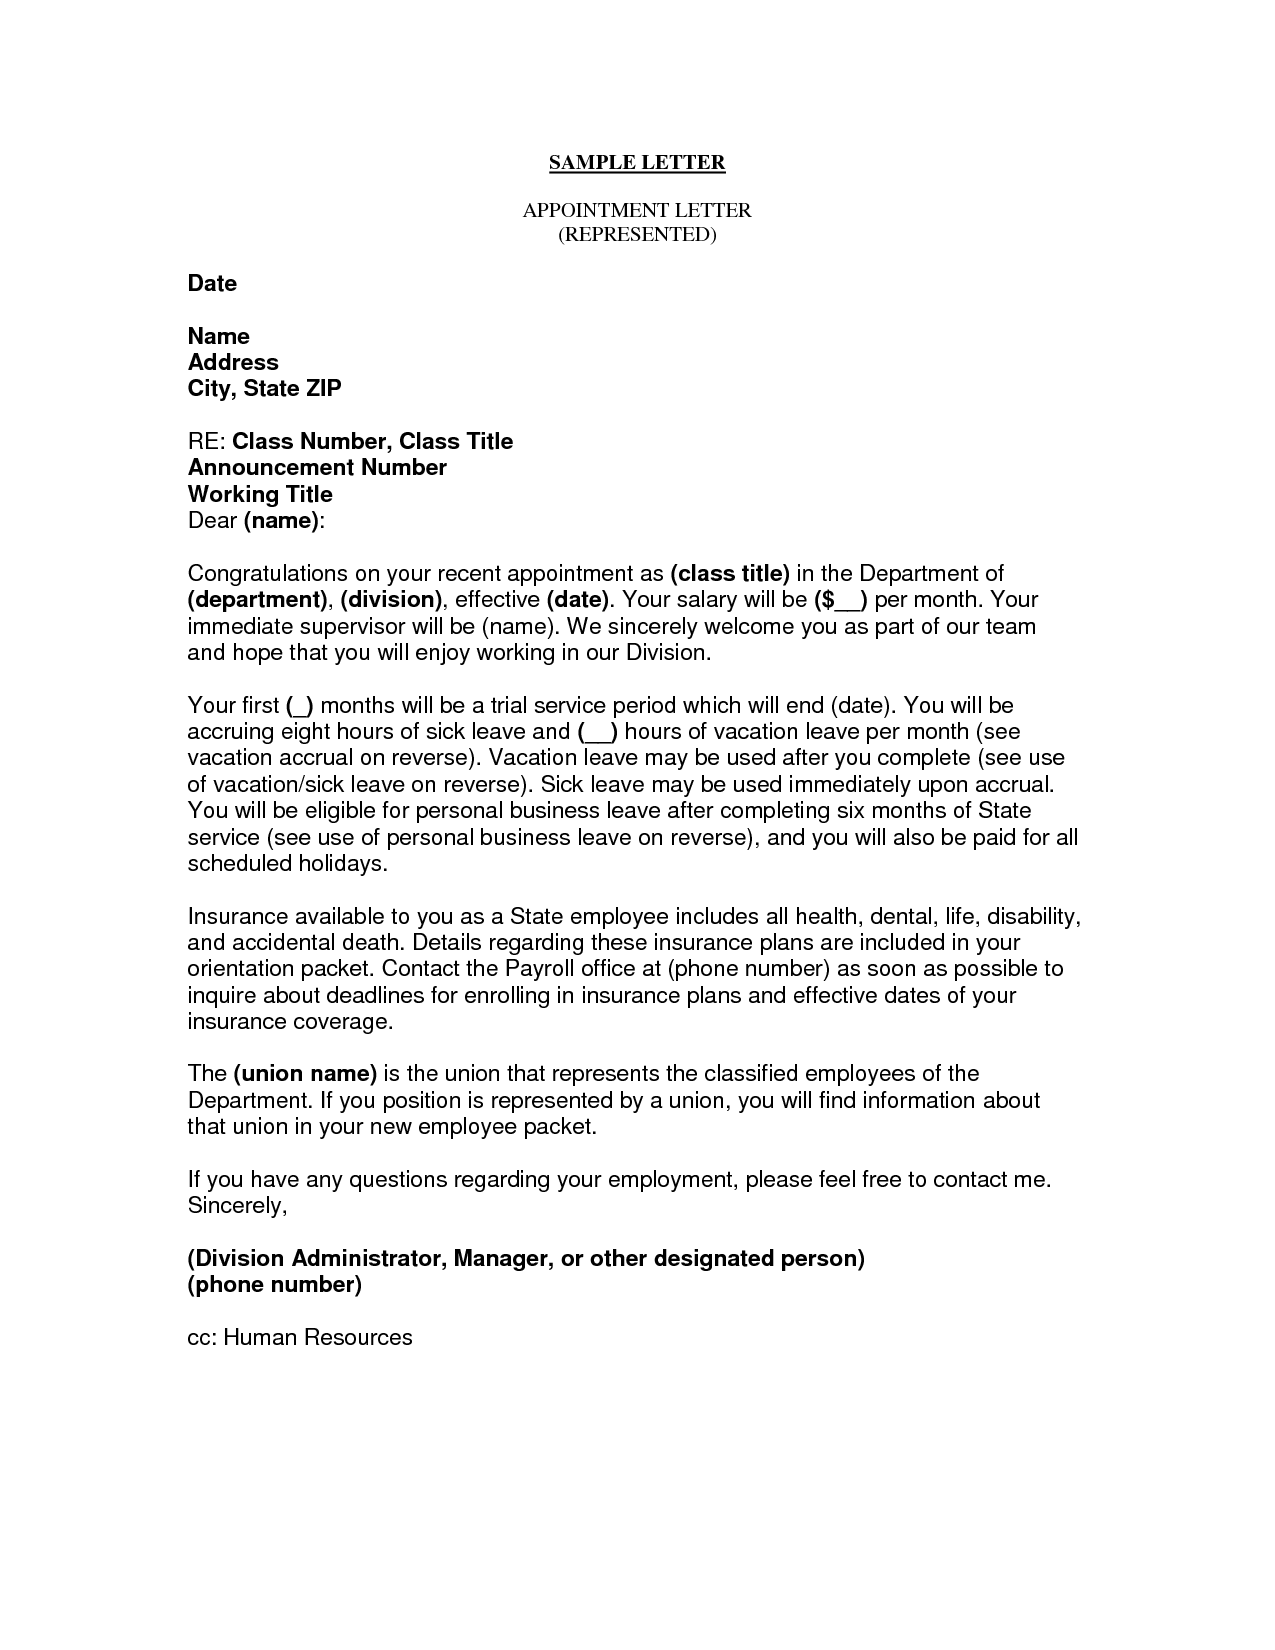 Business appointment letter this letter is used in any business business appointment letter this letter is used in any business organizations for getting the appointment spiritdancerdesigns Image collections